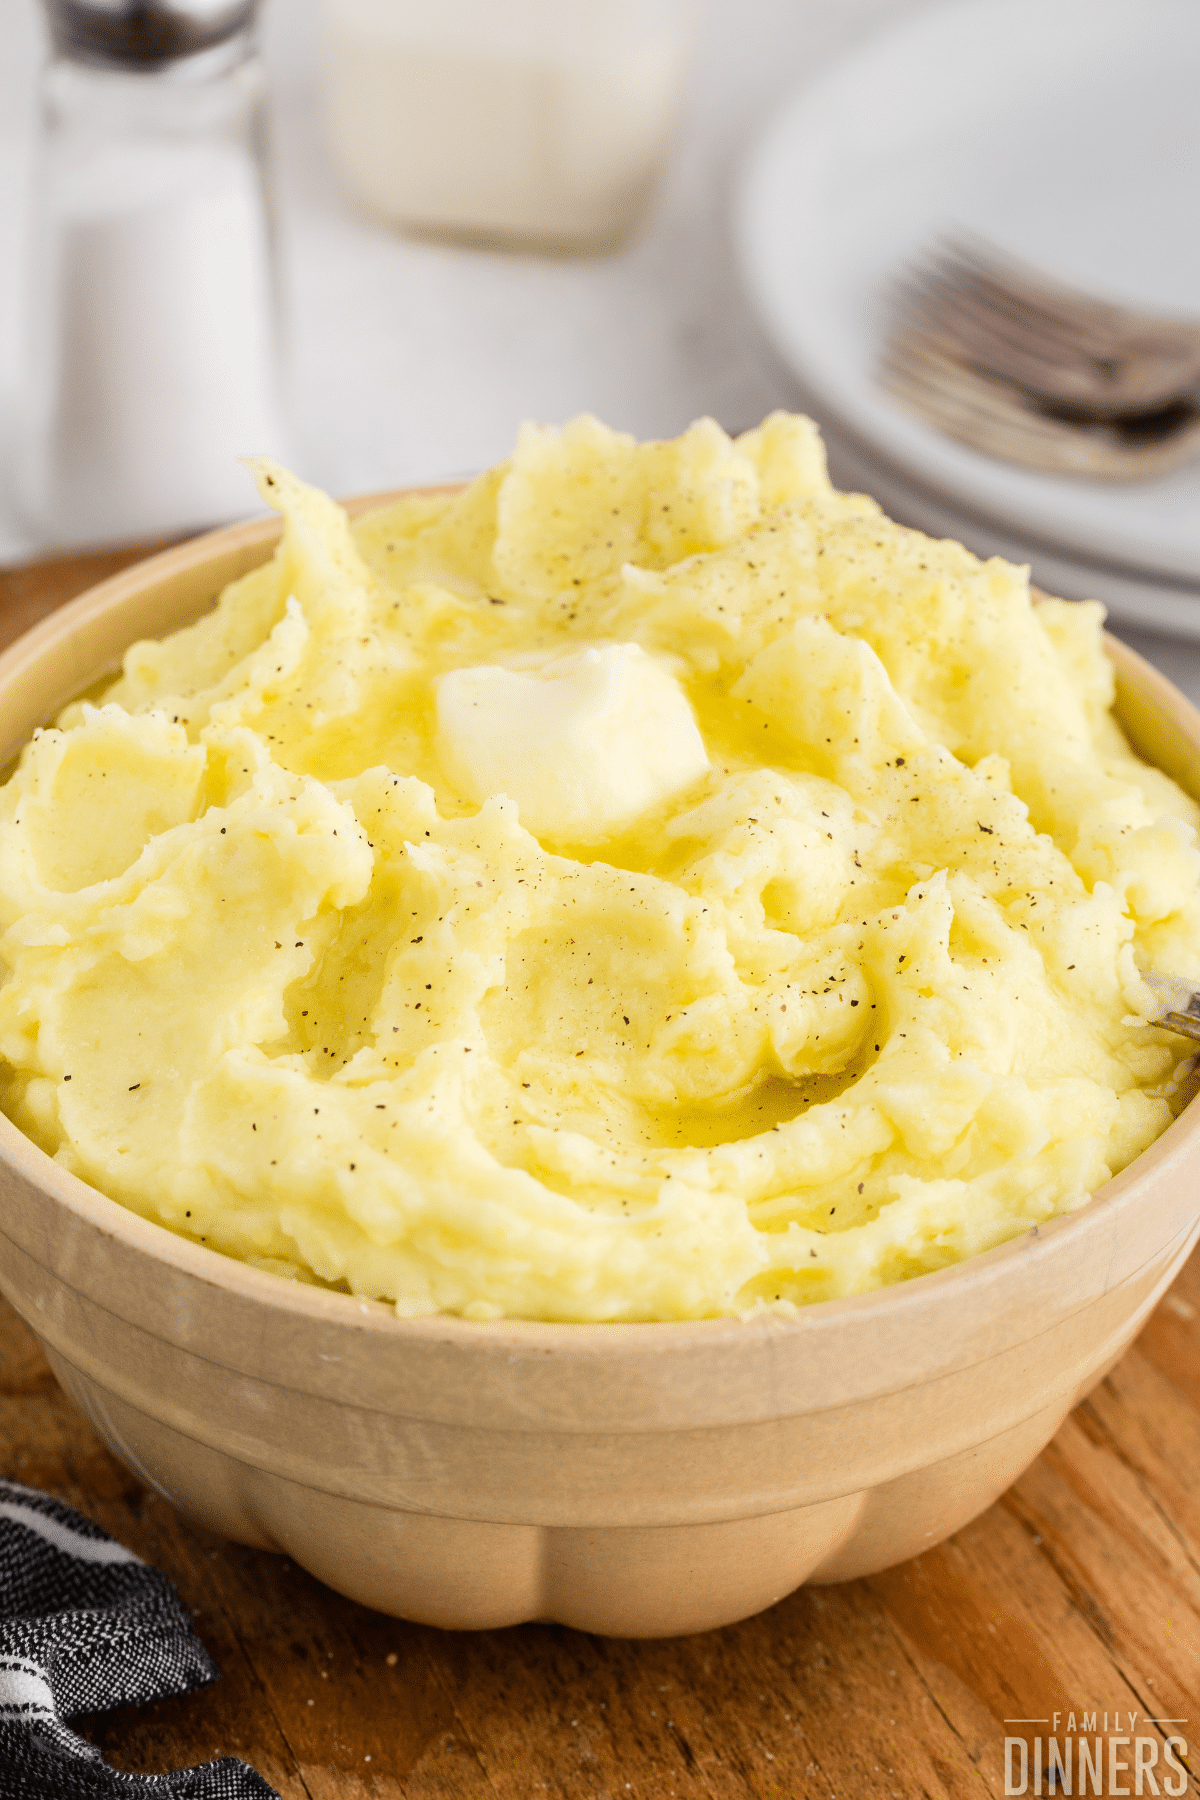 Thanksgiving food - mashed potatoes with butter on top in a bowl for serving potato side dish